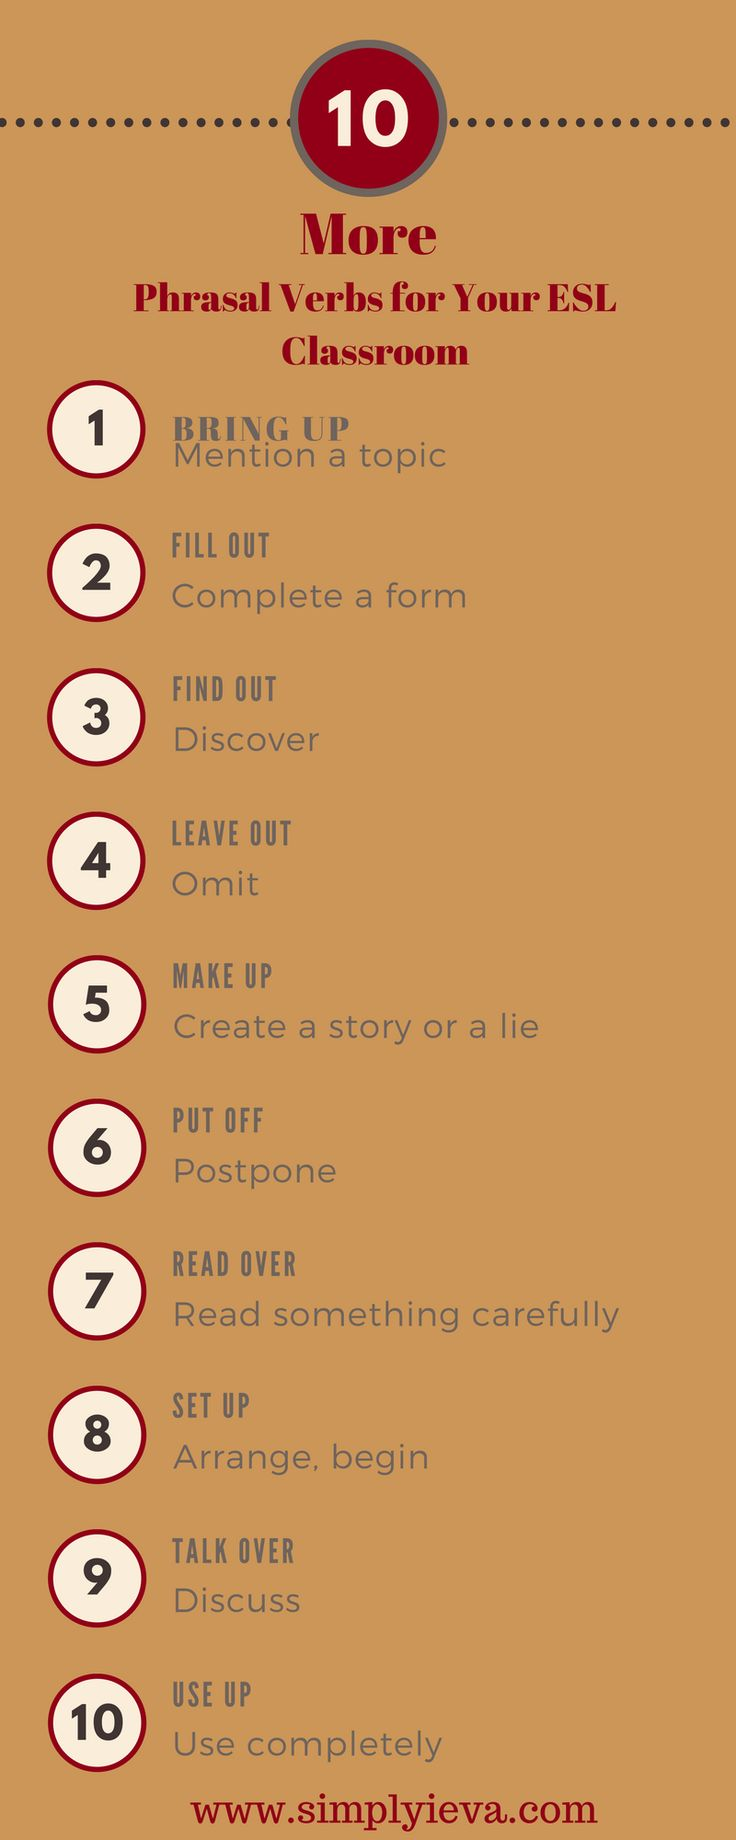 Here are more phrasal verbs that you can use for learning and teaching English.